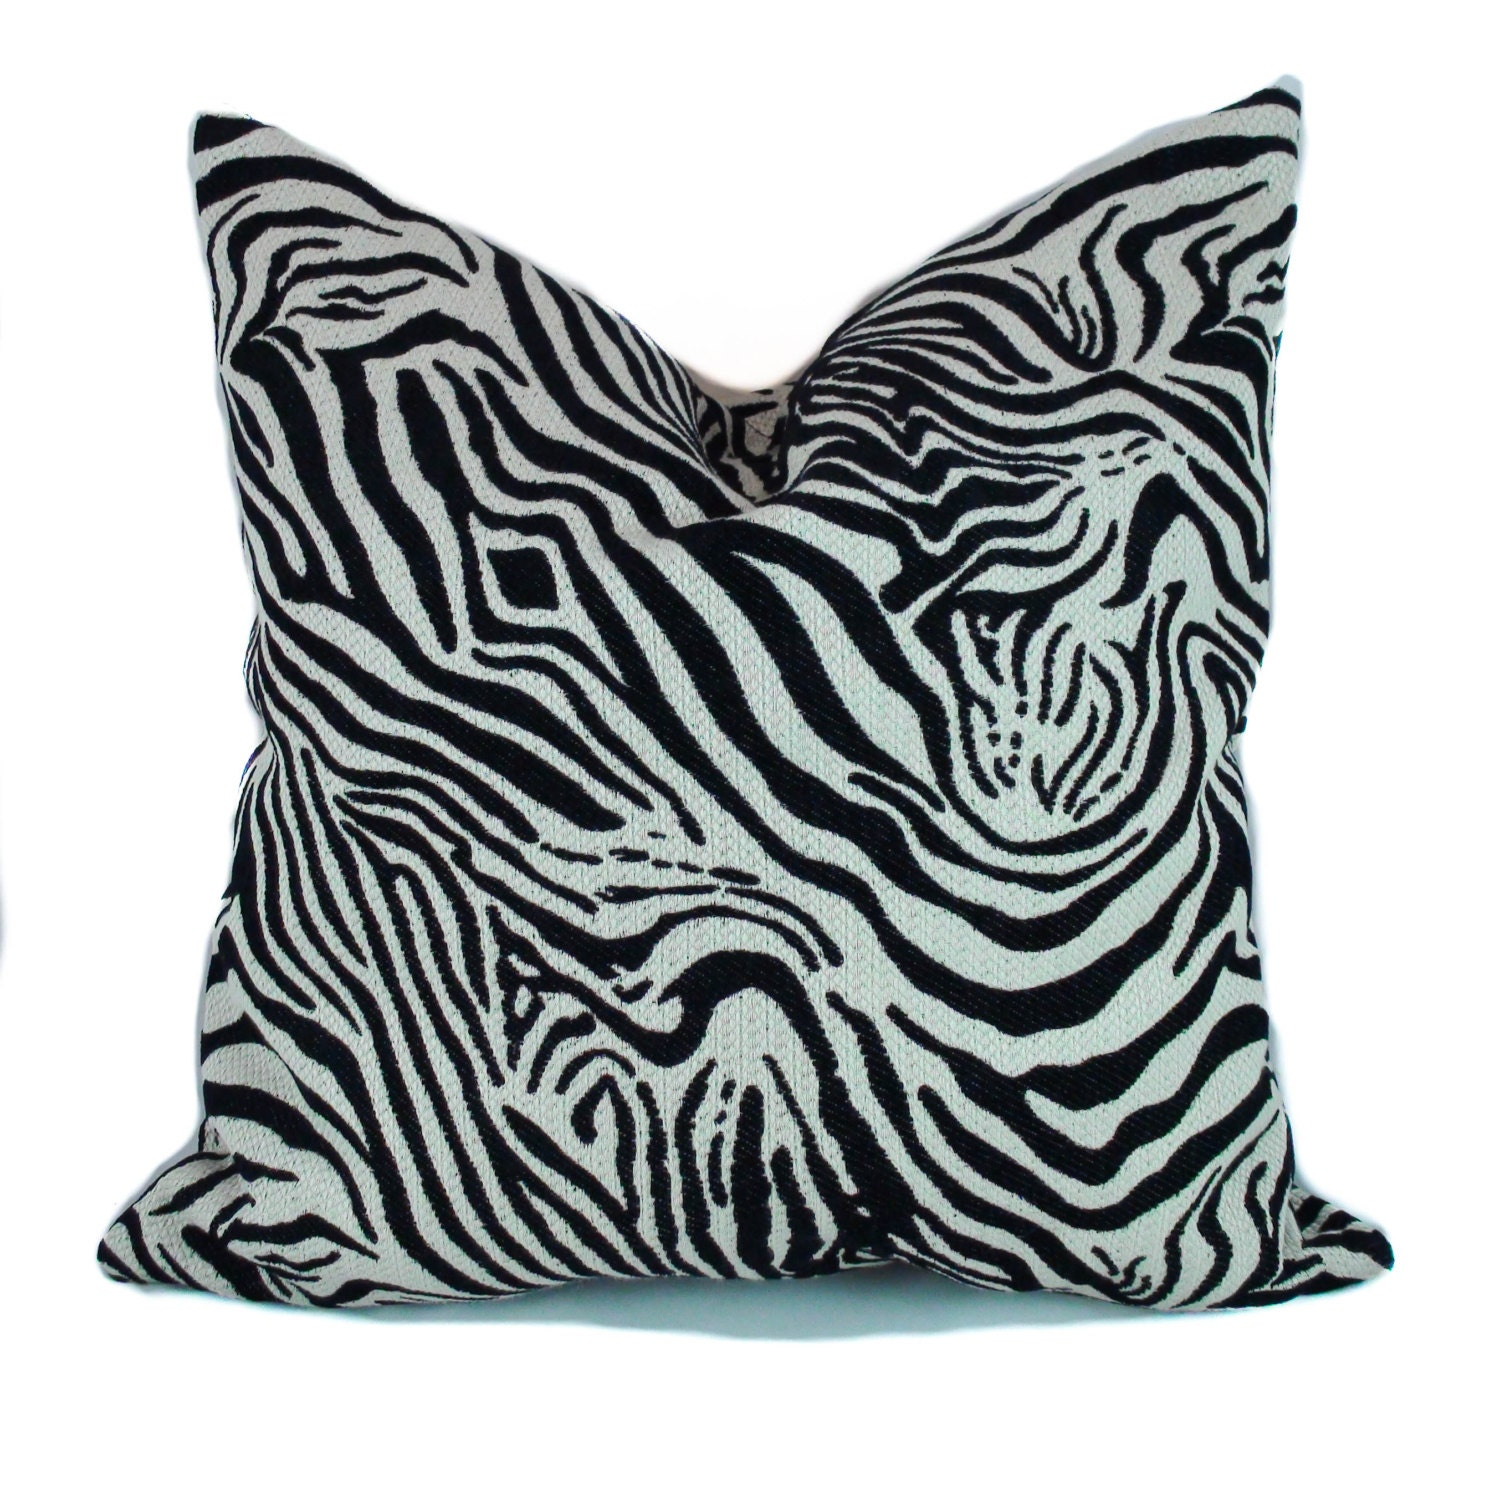 Zebra pillow Throw pillow cover Decorative pillow Animal